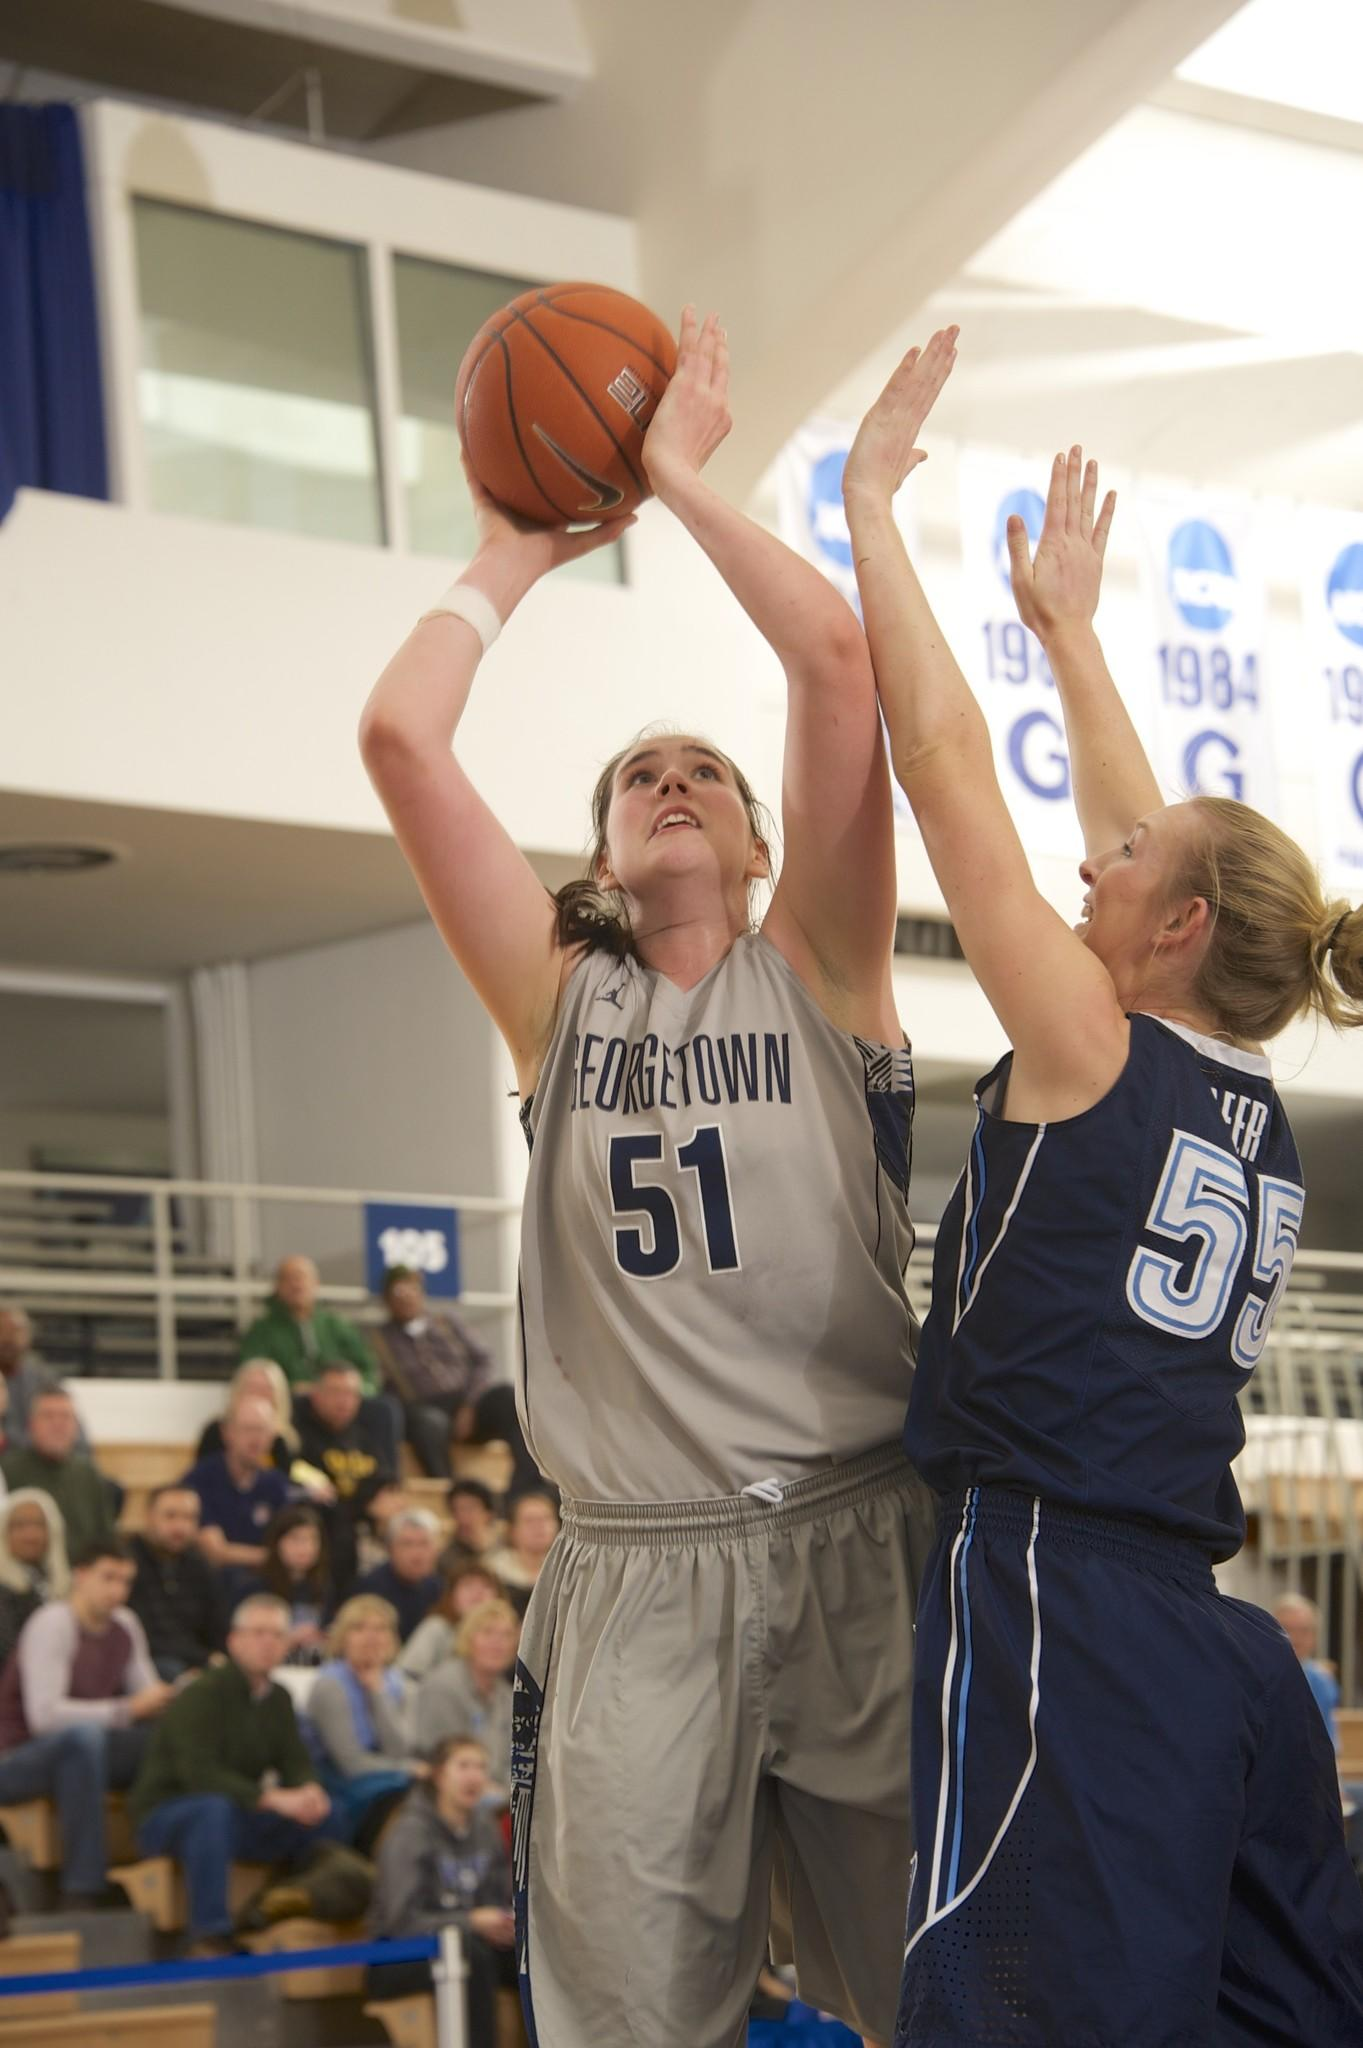 Big East freshman of the Year Natalie Butler has made official her plans to transfer to UConn.